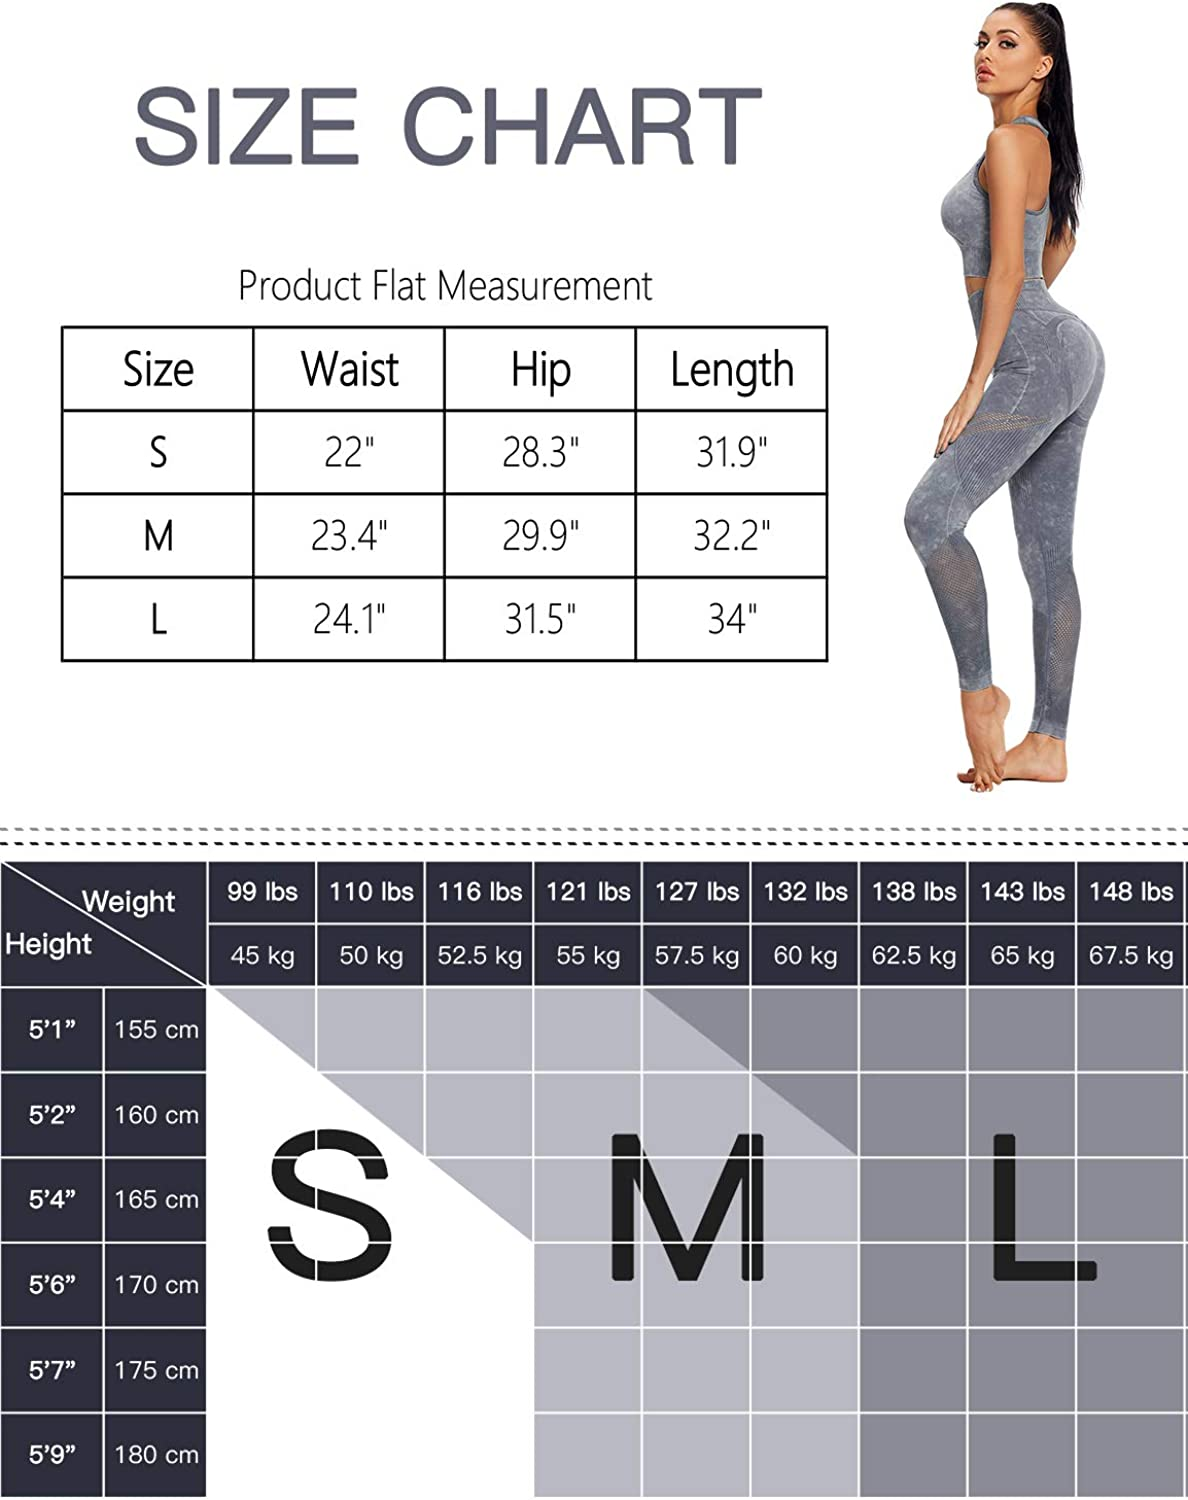 SEVEGO Womens Seamless Yoga Leggings High Waisted Athletic Workout Gym Tights Hollow Running Pants